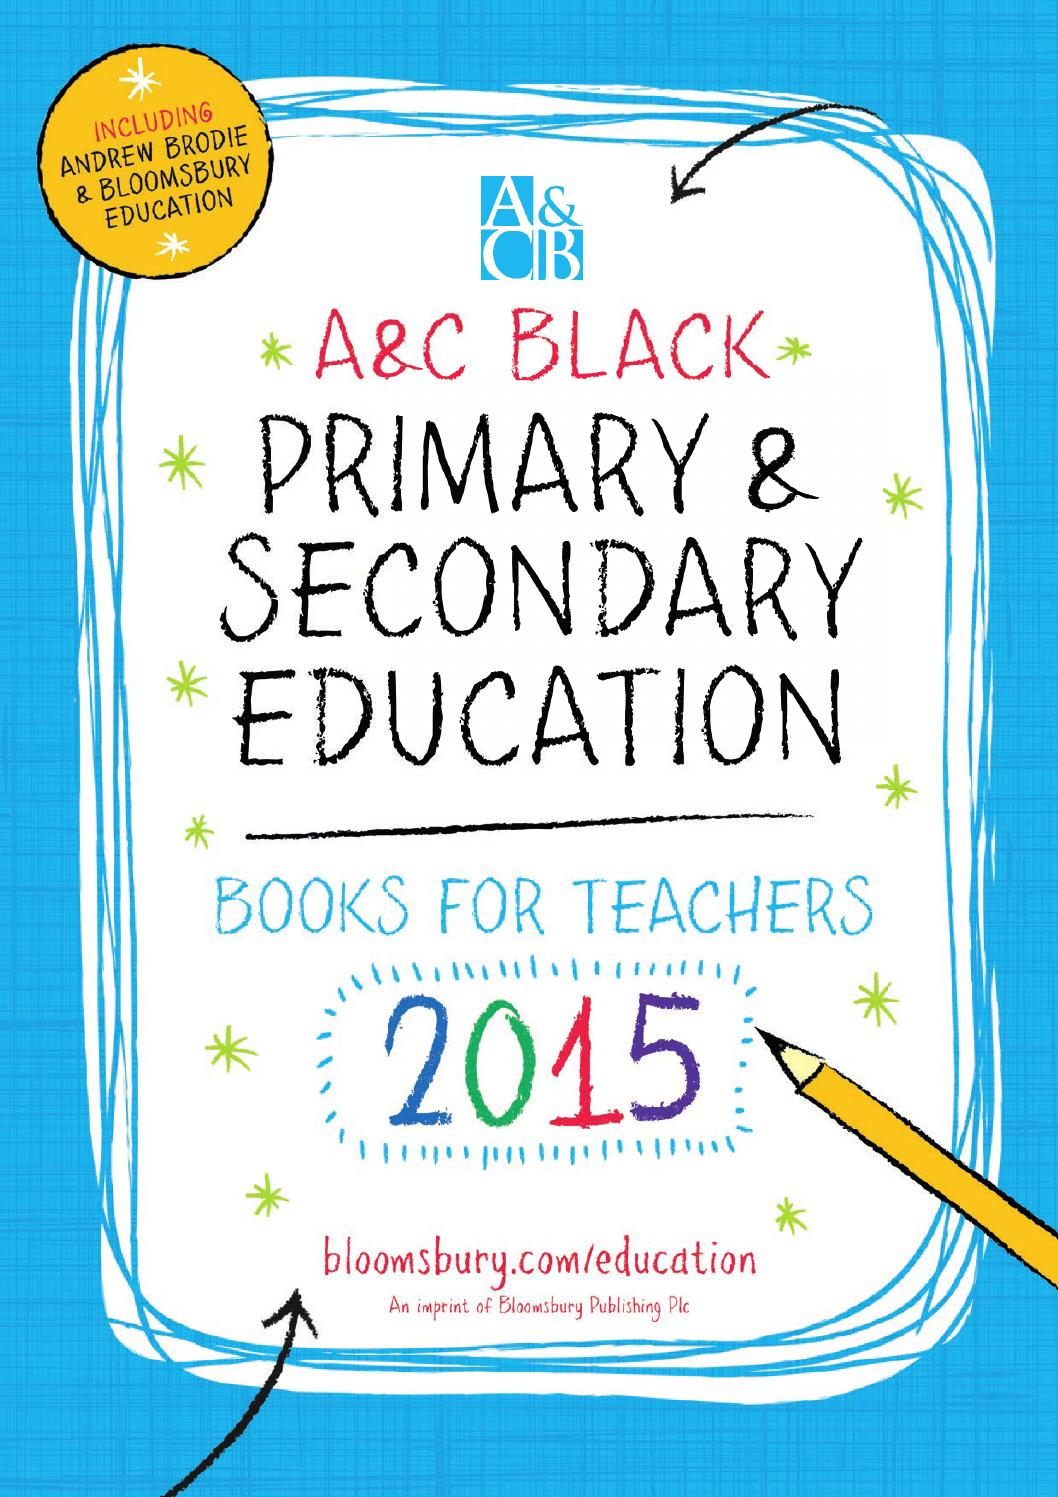 A C Black Education catalogue 2015 by Bloomsbury Publishing - issuu 84807eae1a